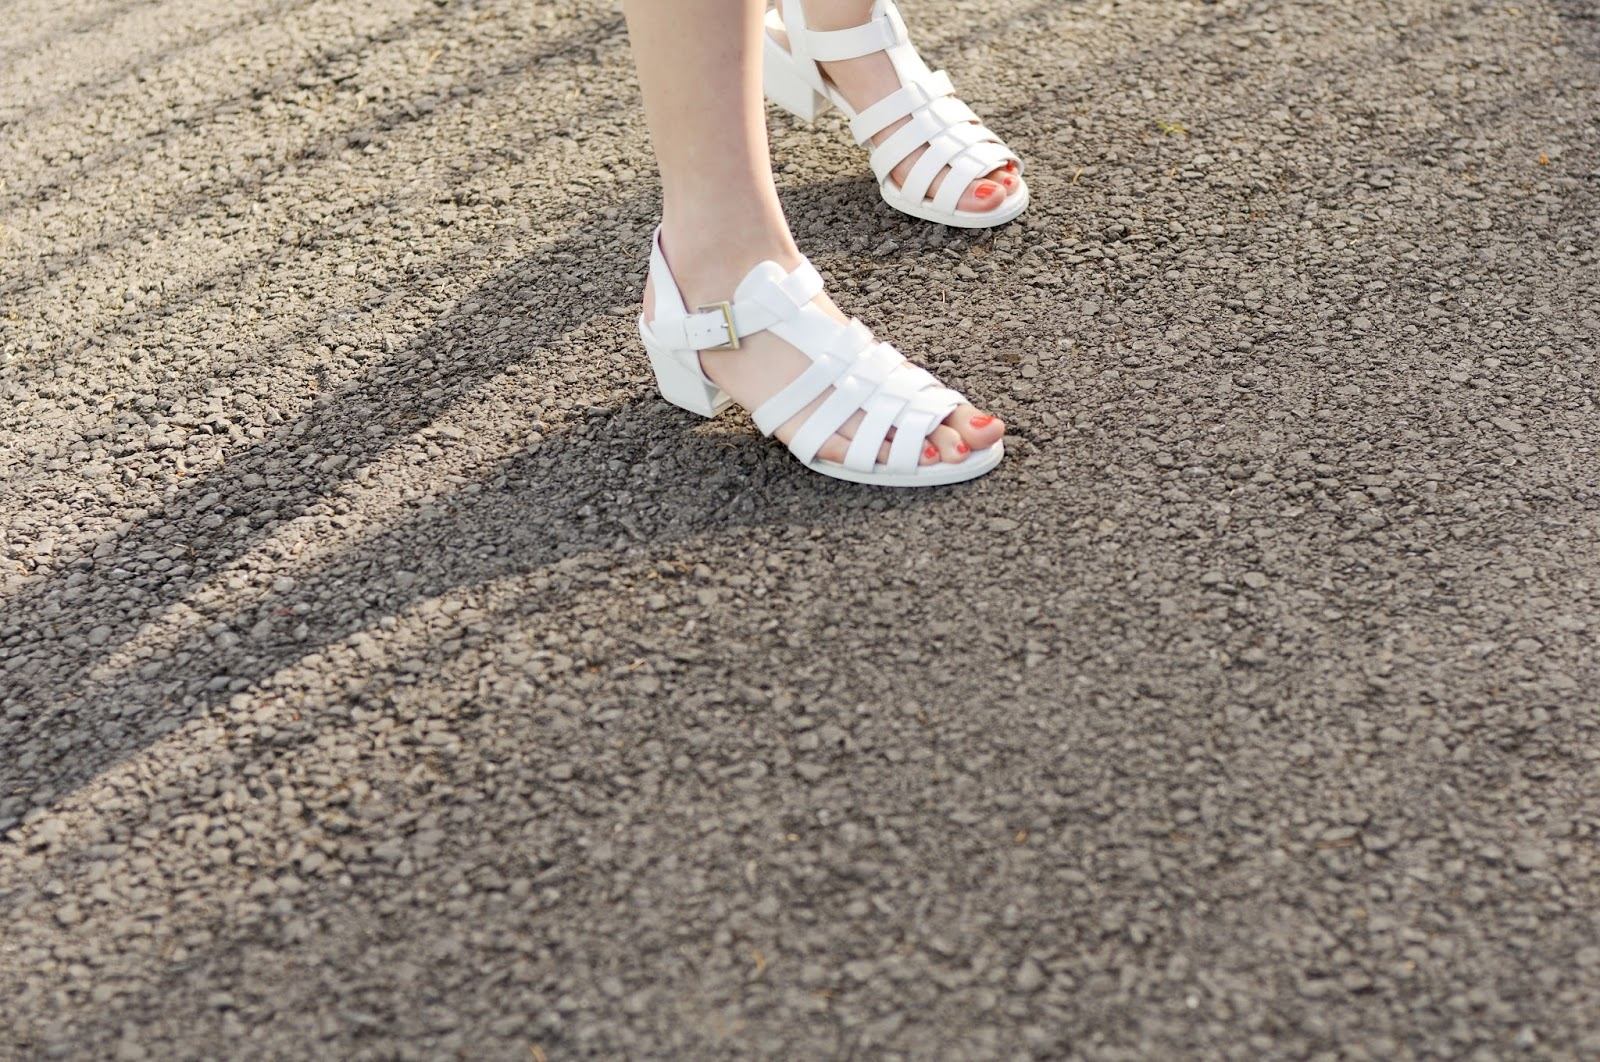 asos white sandals, sandals for summer, white sandals, chunky heel sandals